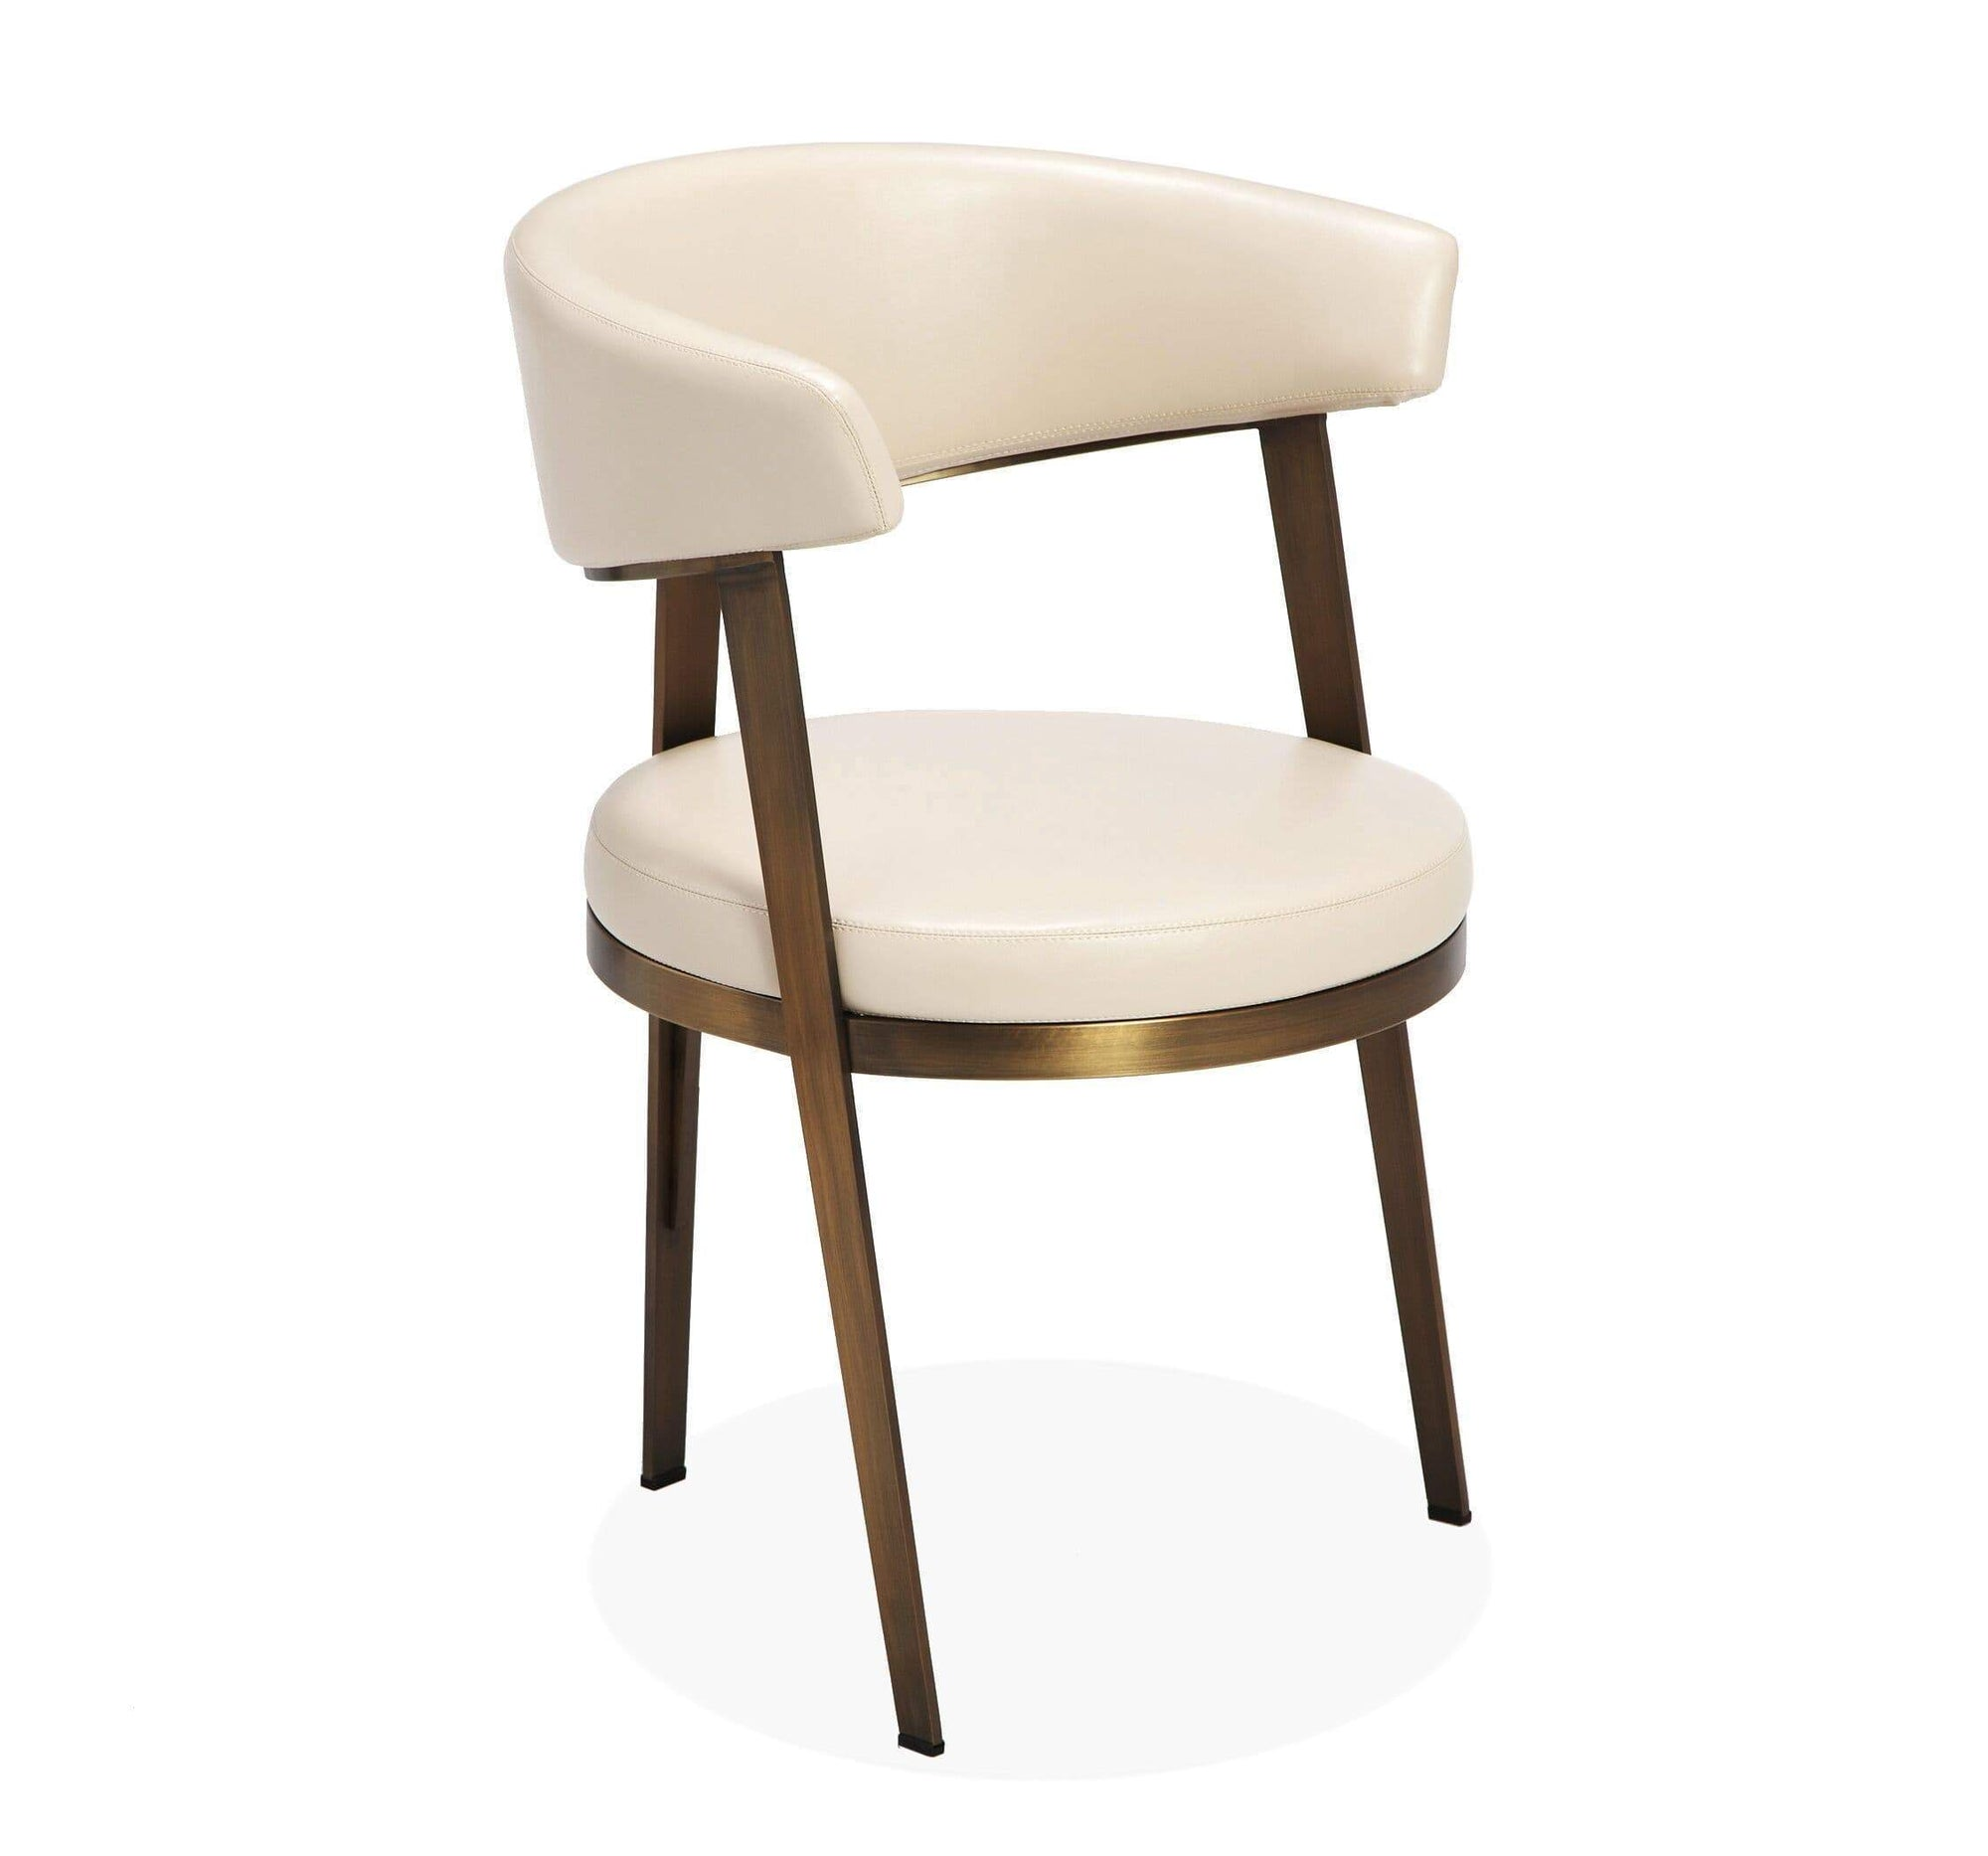 Interlude Home Interlude Home Adele Dining Chair - 2 Available Colors Ivory 148018